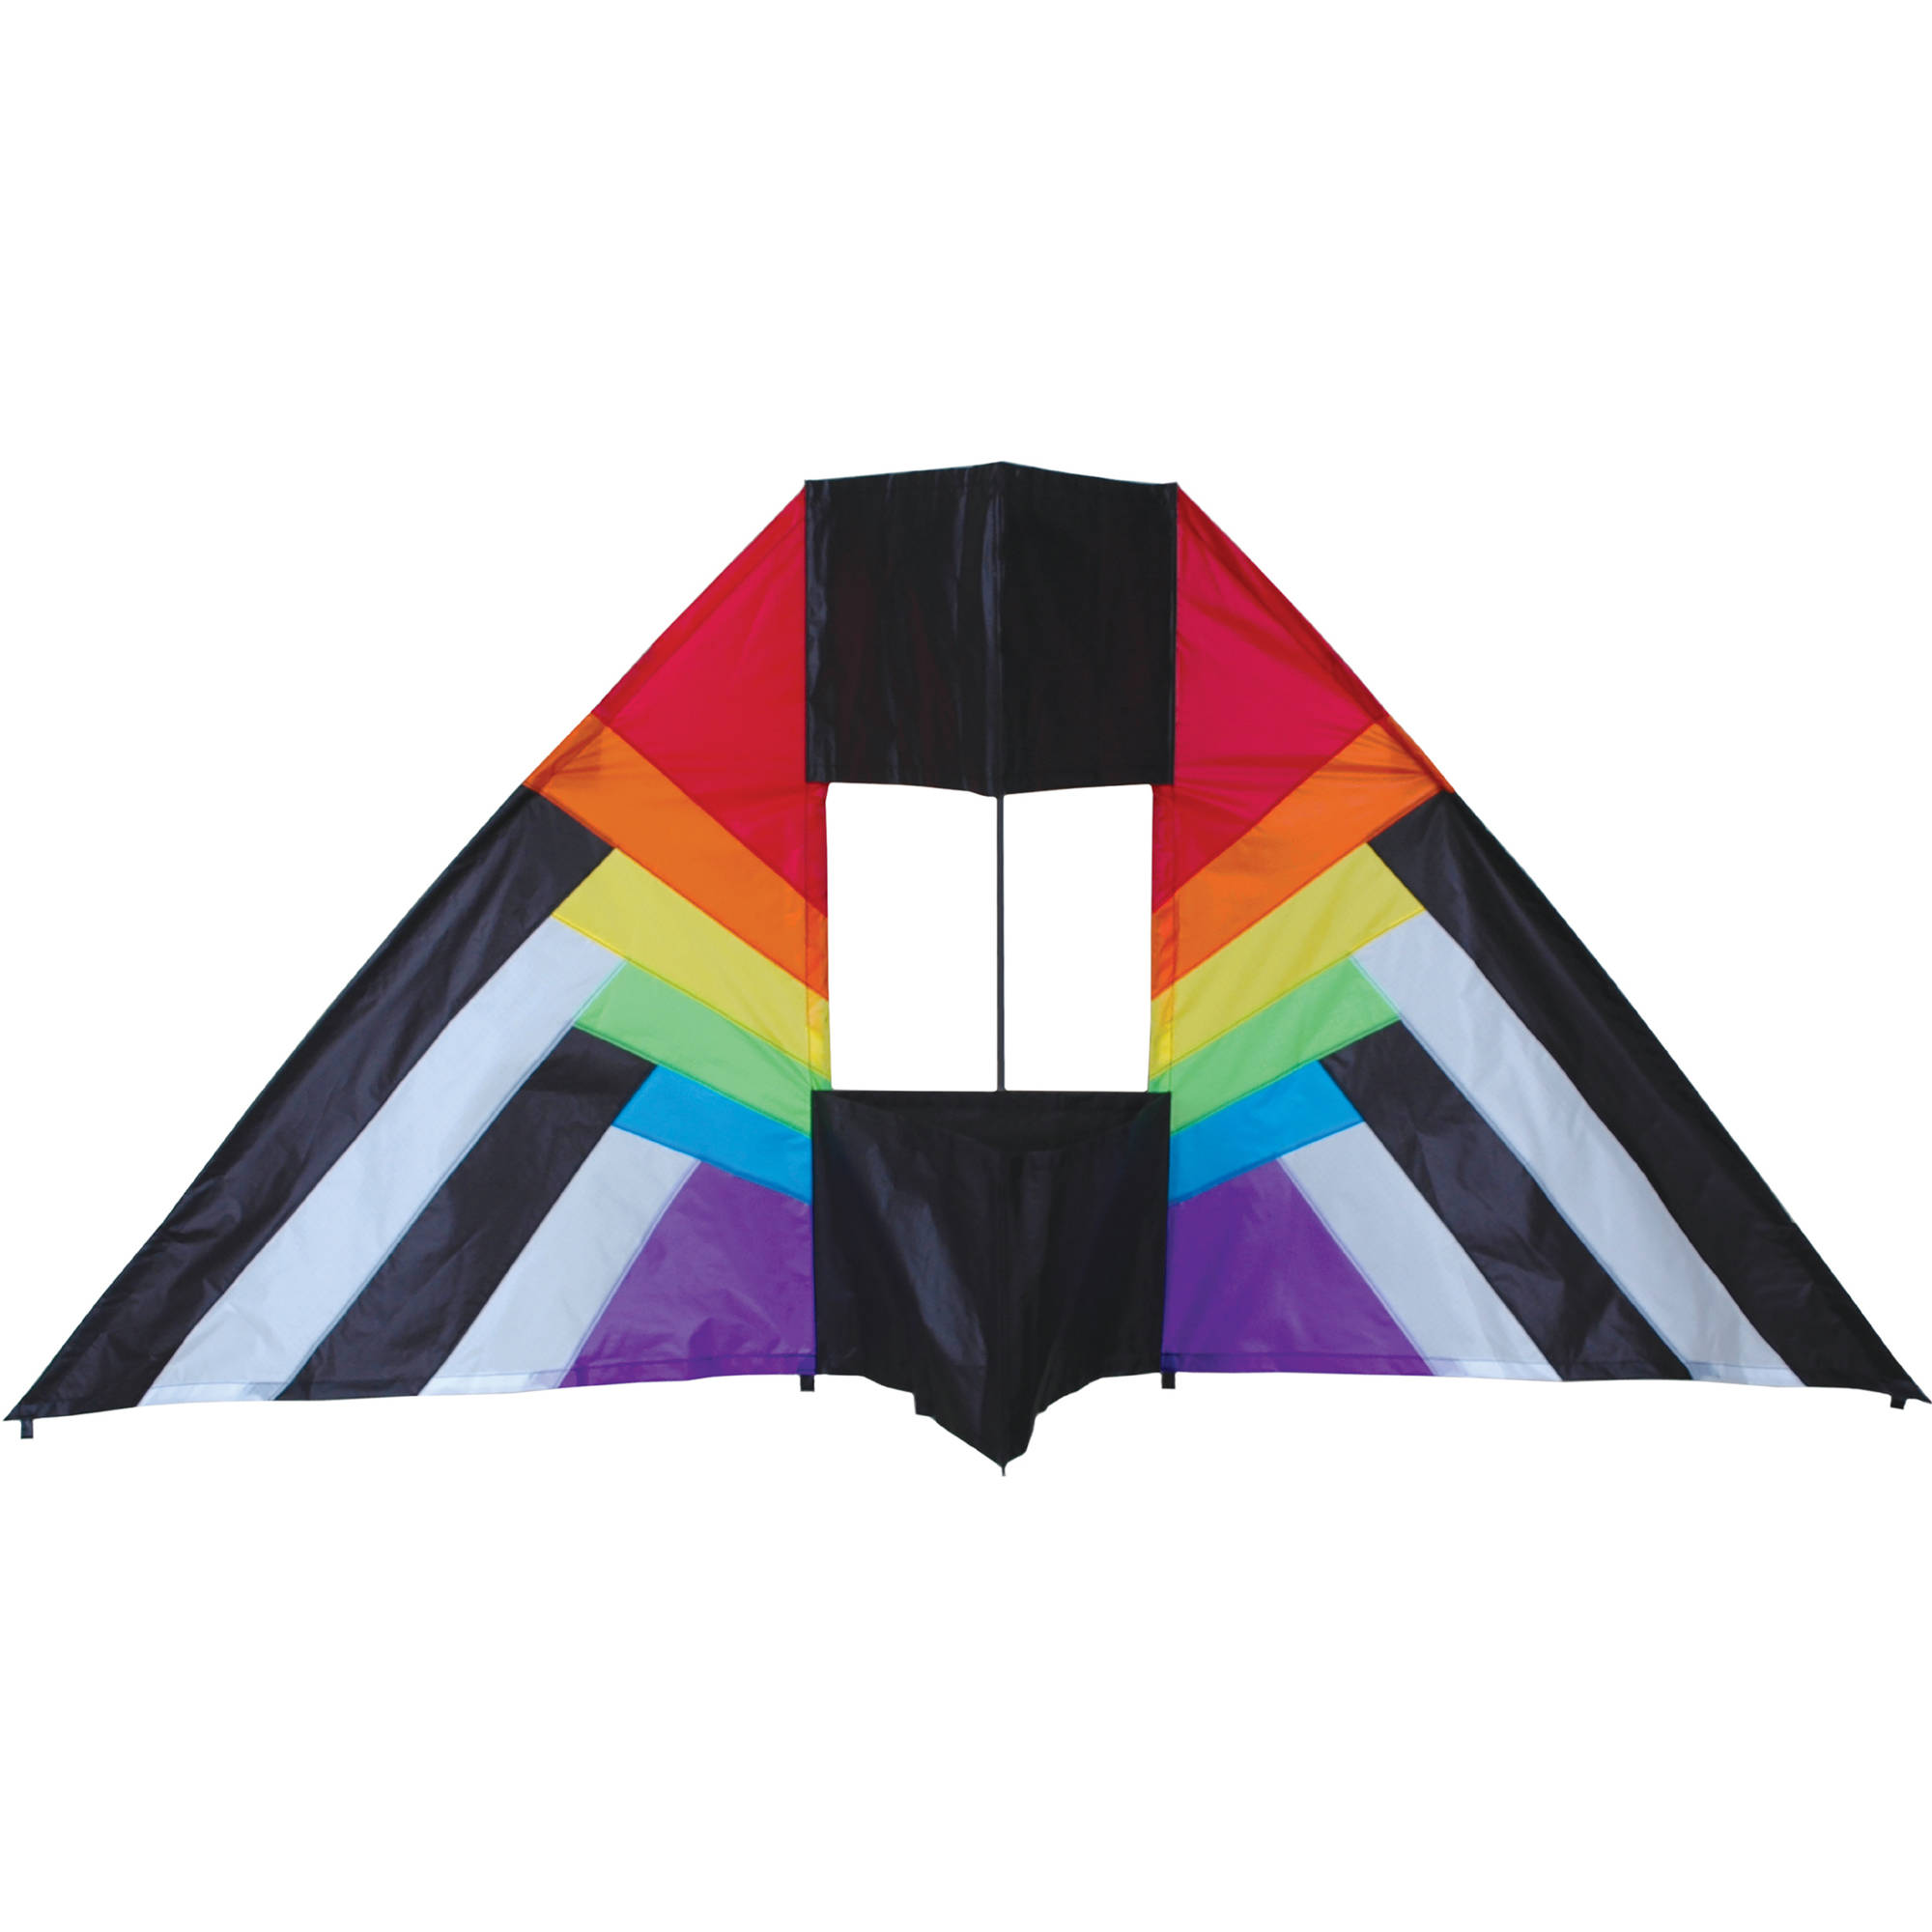 Cabana Box Kite Premier Kites 36 in